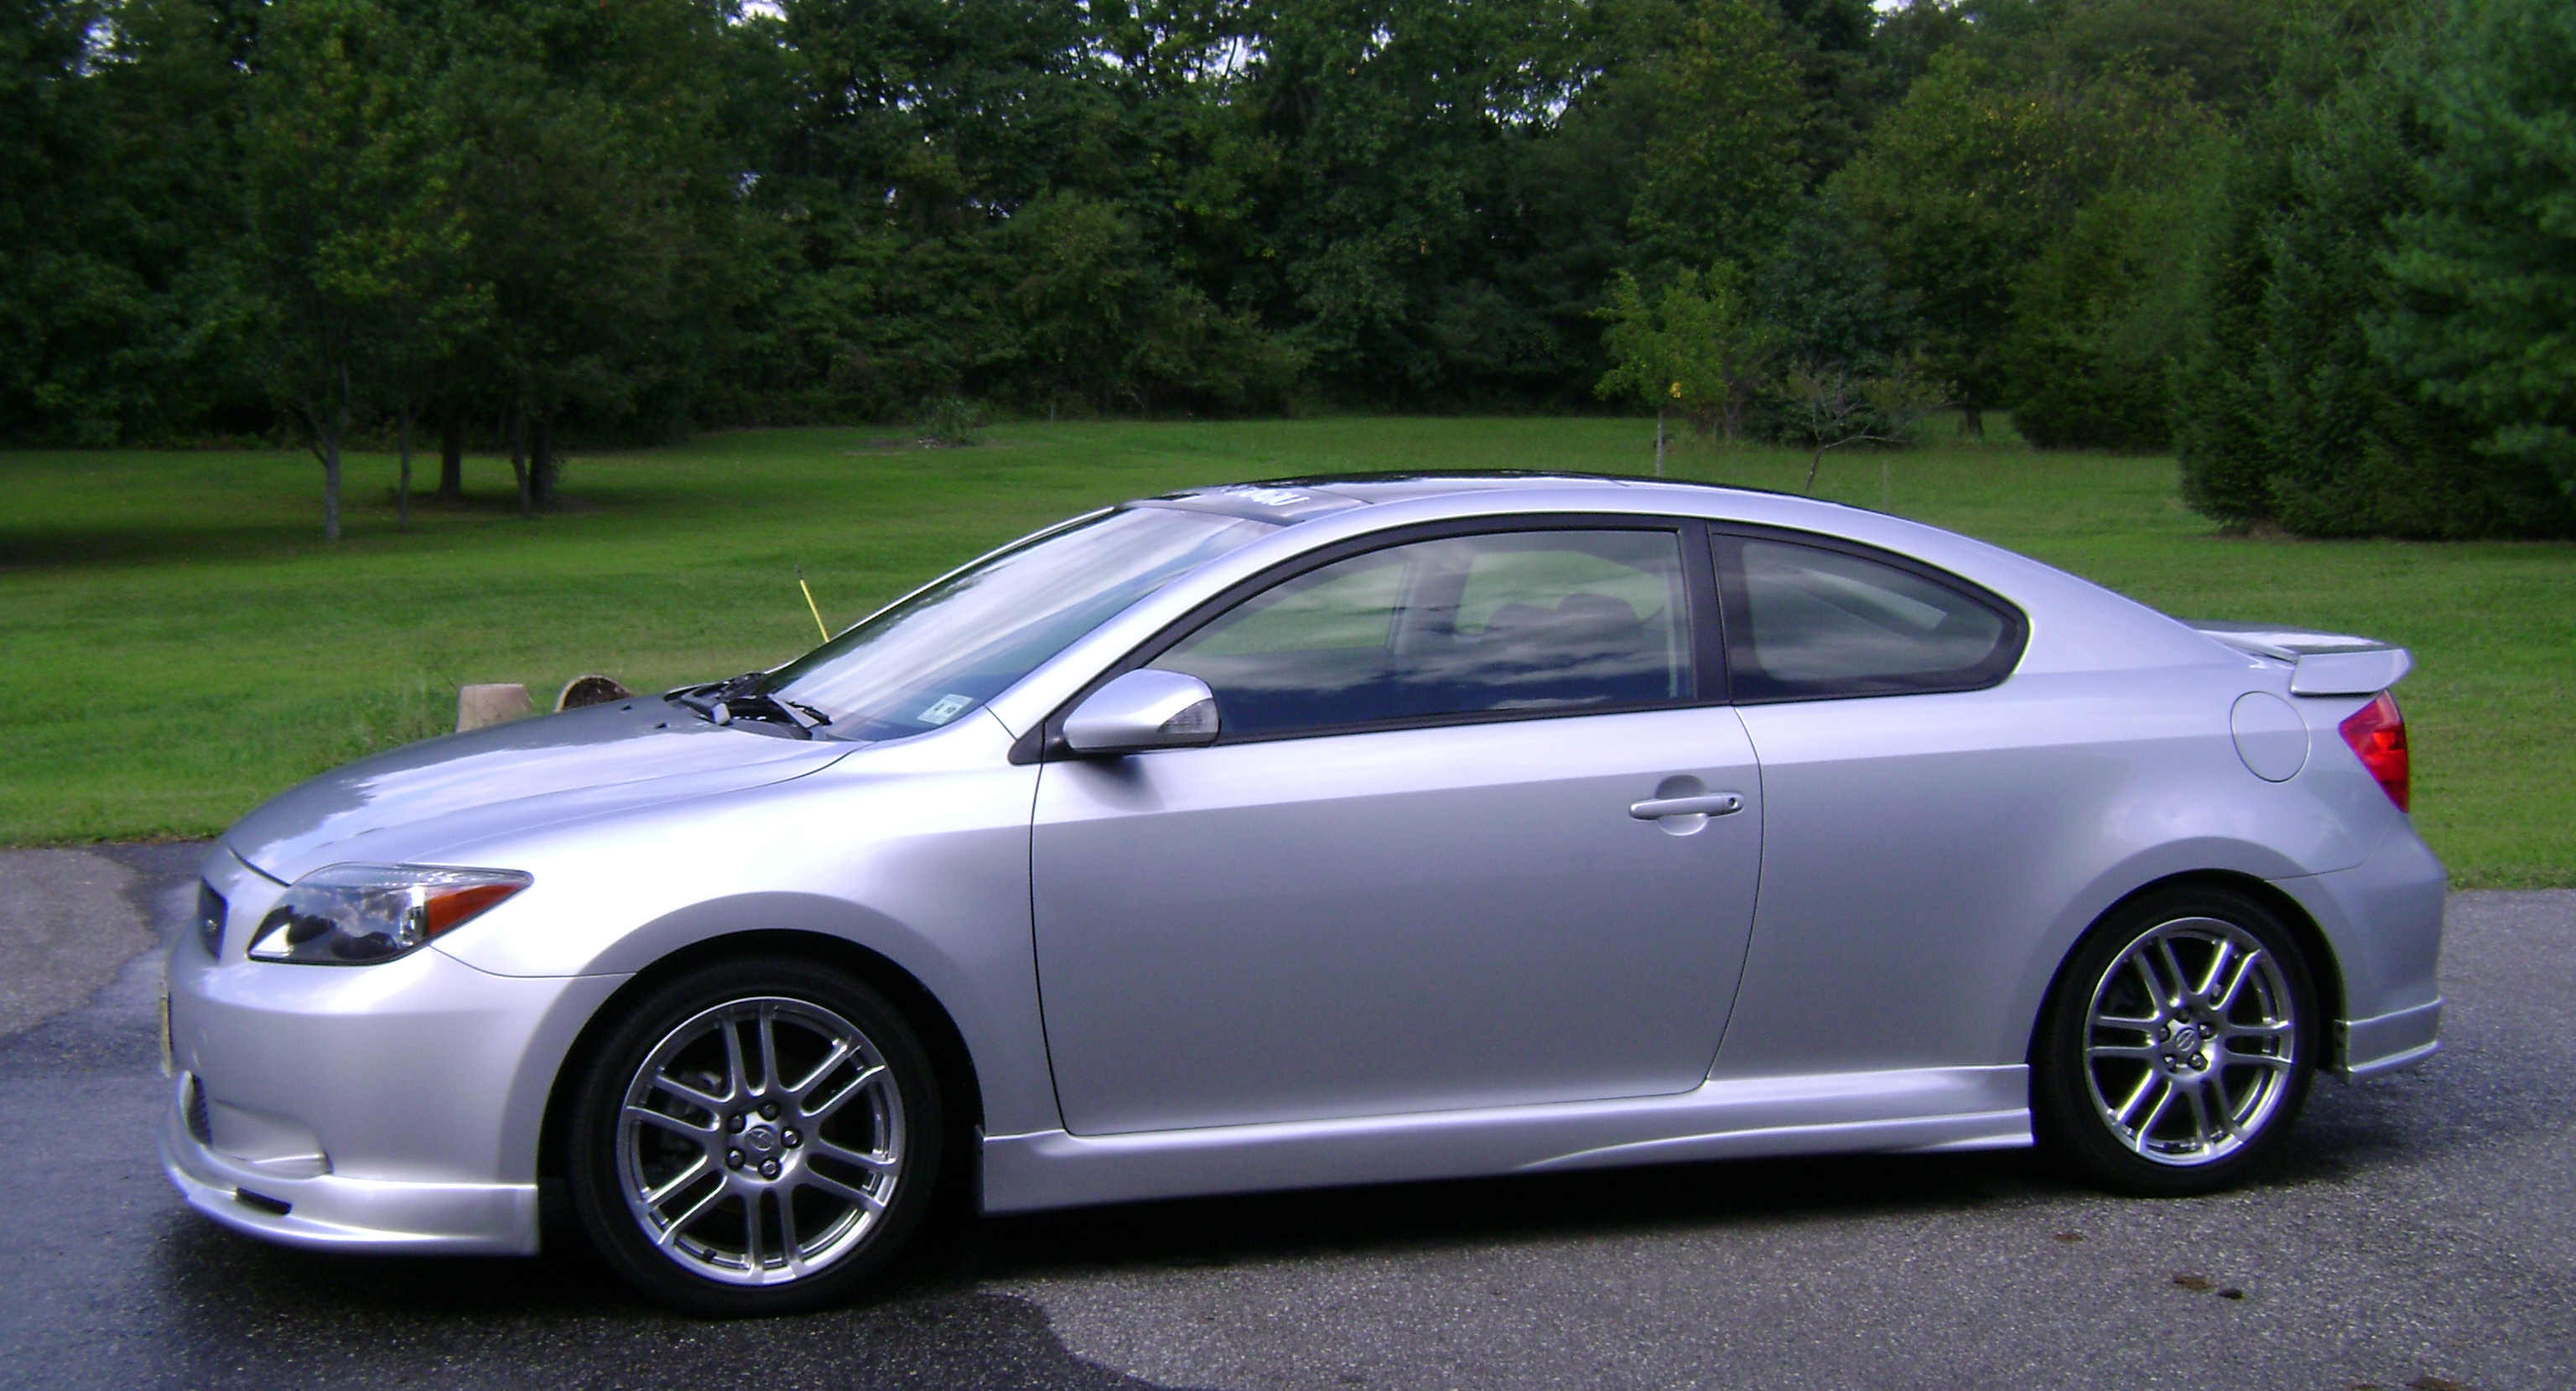 Awesome 2006 Scion TC #16 Scion TC #16